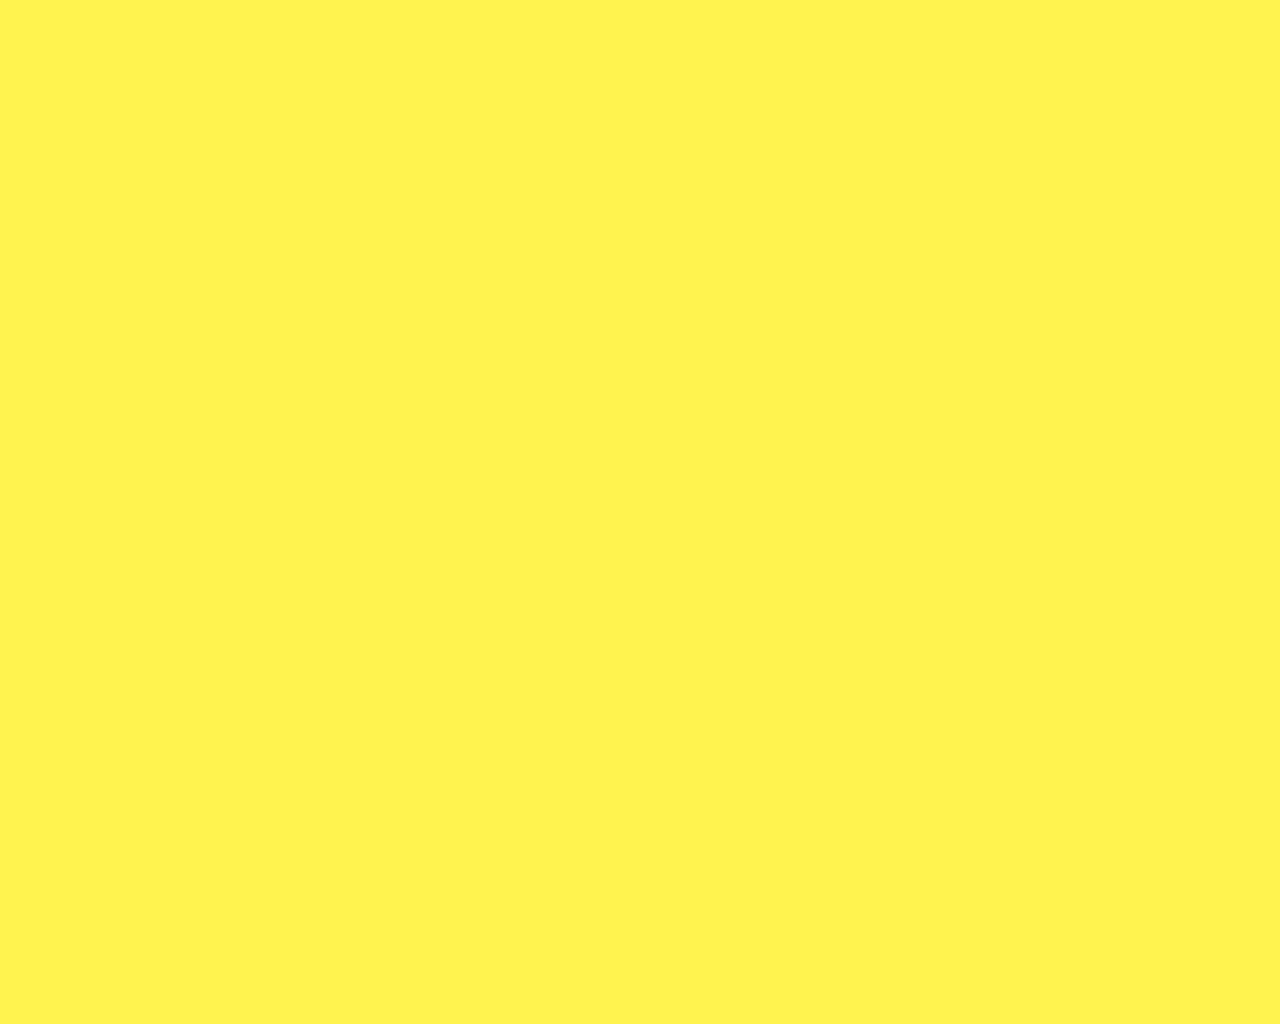 1280x1024 Lemon Yellow Solid Color Background